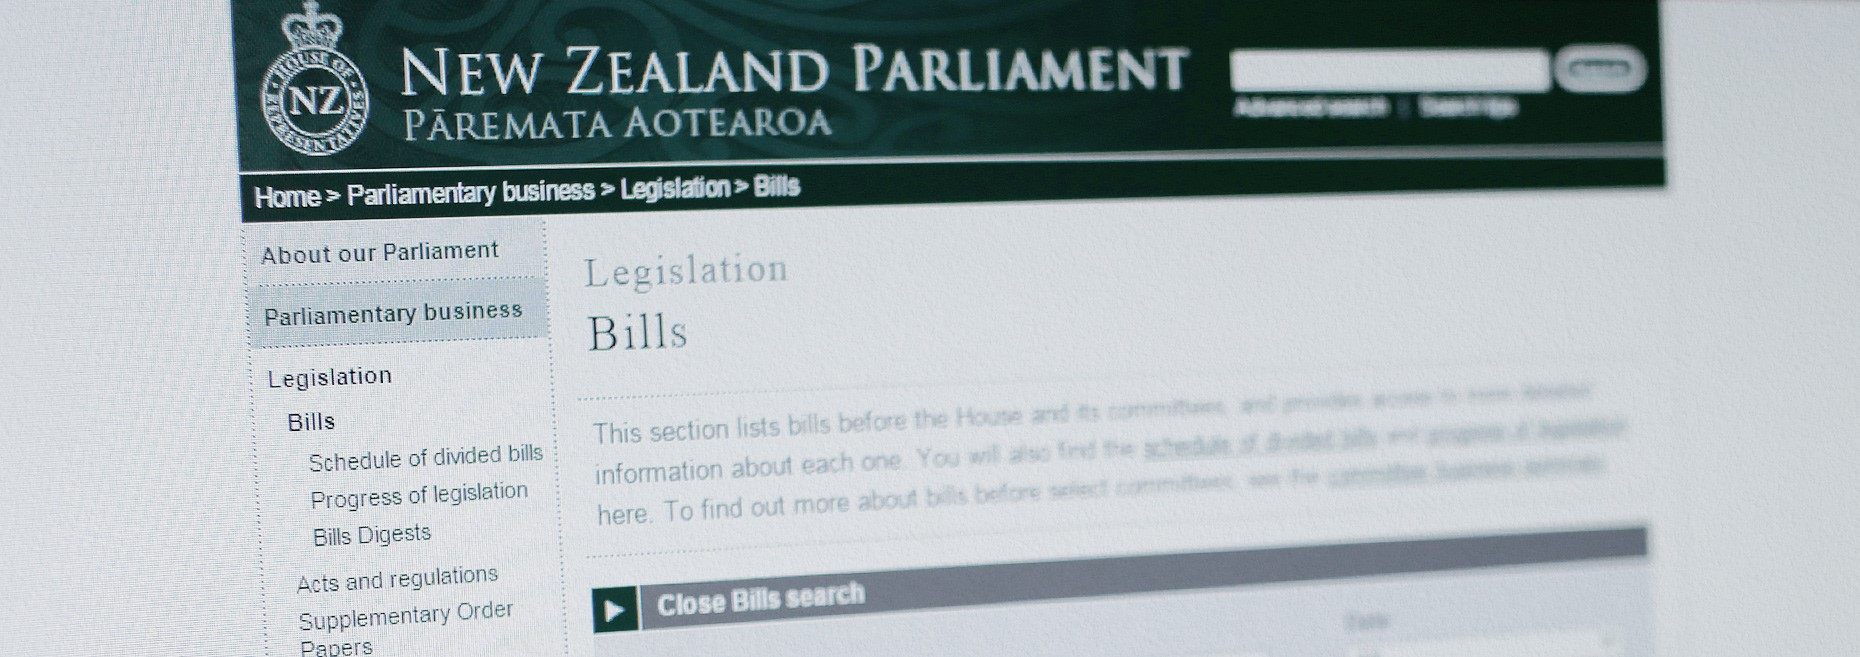 New Zealand Parliament's Website